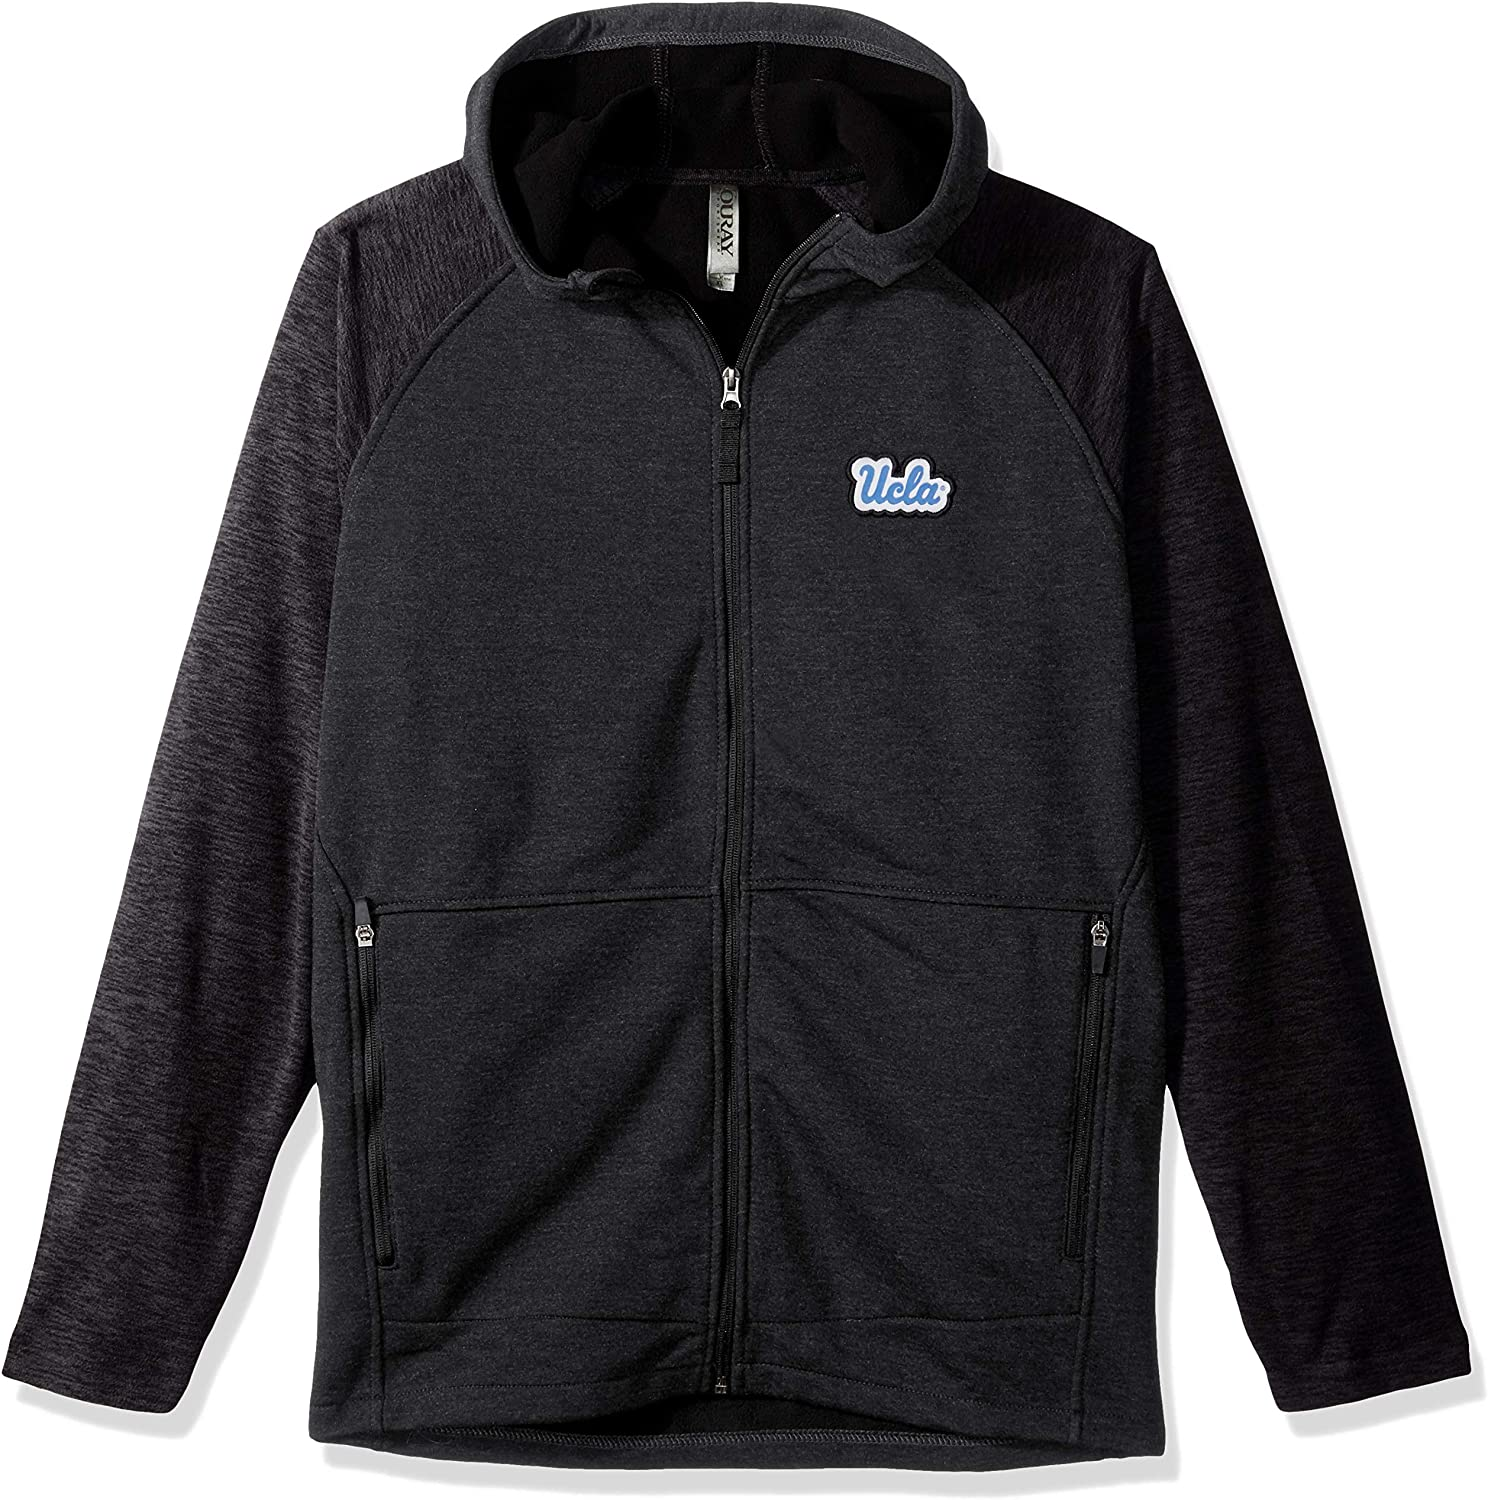 Ouray Sportswear Adult-Men Ii Jacket Max Bombing free shipping 47% OFF Hybrid